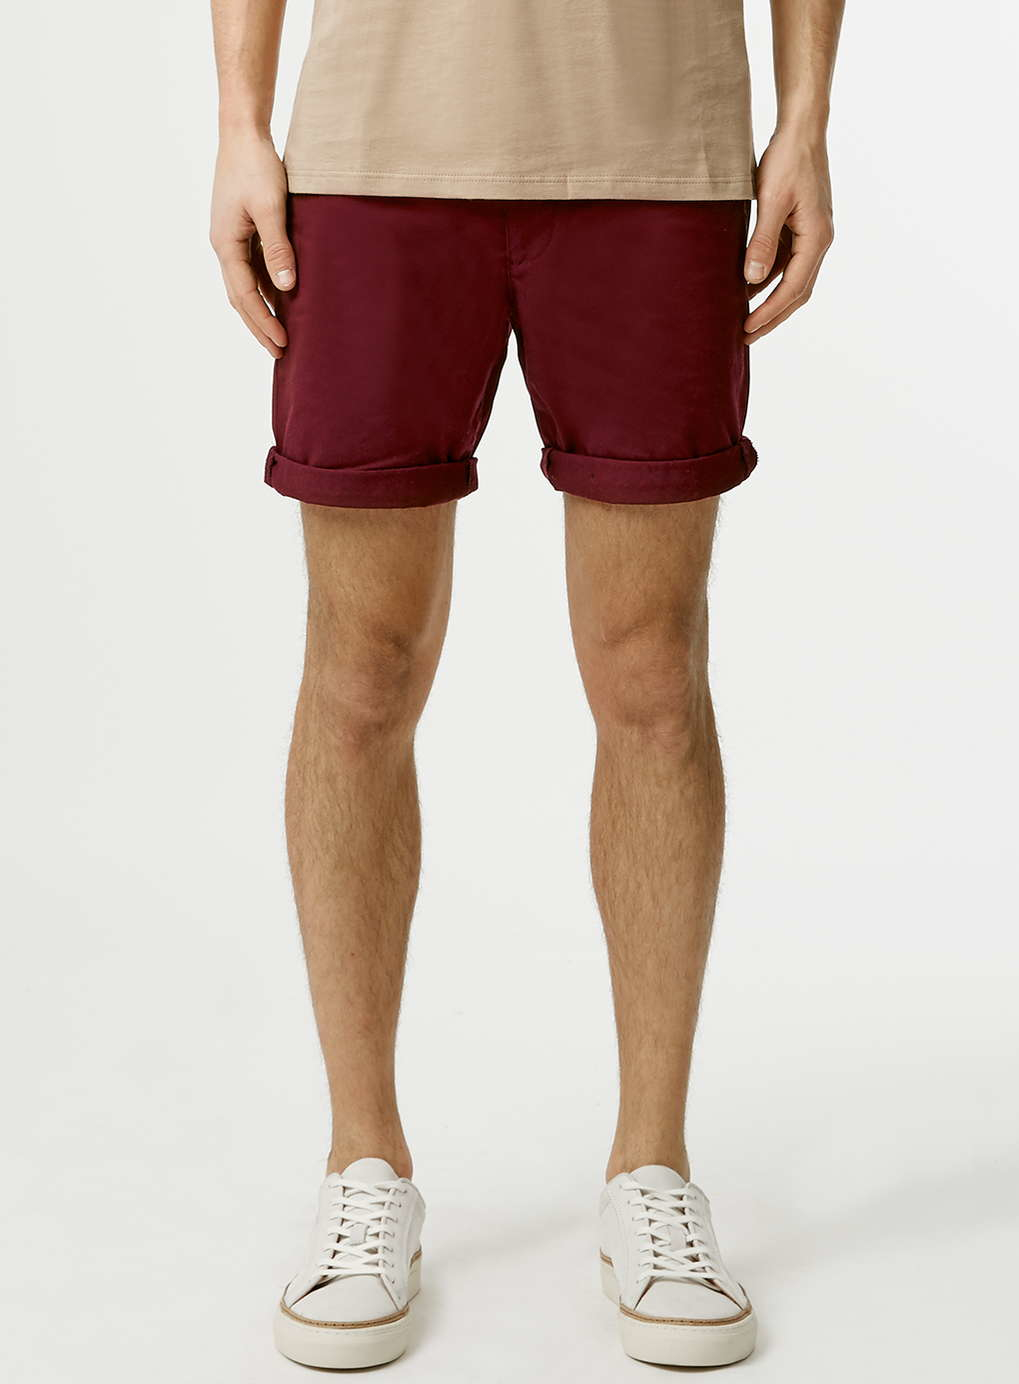 You searched for: burgundy shorts! Etsy is the home to thousands of handmade, vintage, and one-of-a-kind products and gifts related to your search. No matter what you're looking for or where you are in the world, our global marketplace of sellers can help you find unique and affordable options. Let's get started!